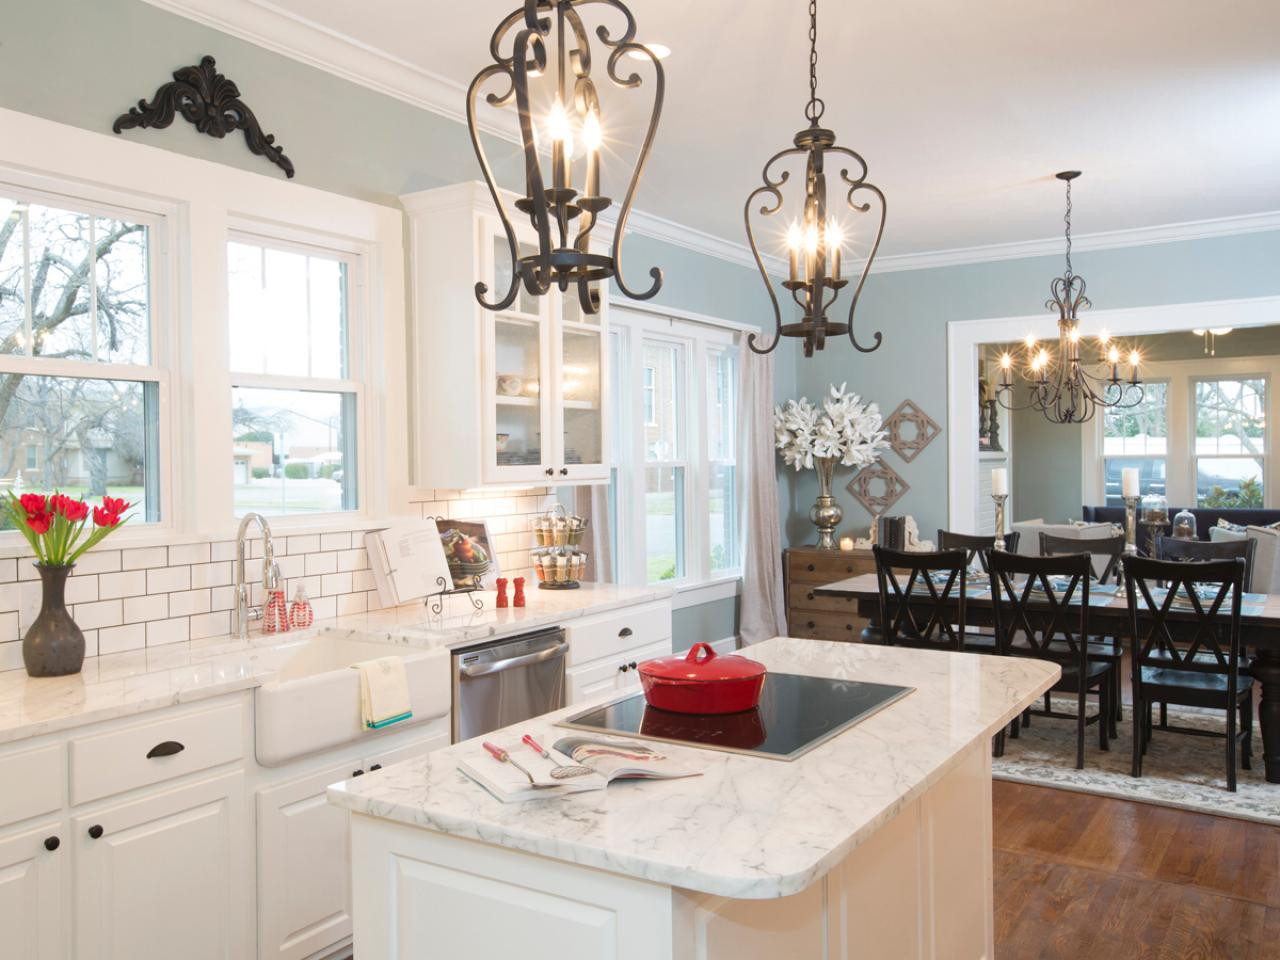 Best ideas about Joanna Gaines Kitchen Ideas . Save or Pin 18 Best of Fixer Upper Kitchen Color Blue Fixer Now.